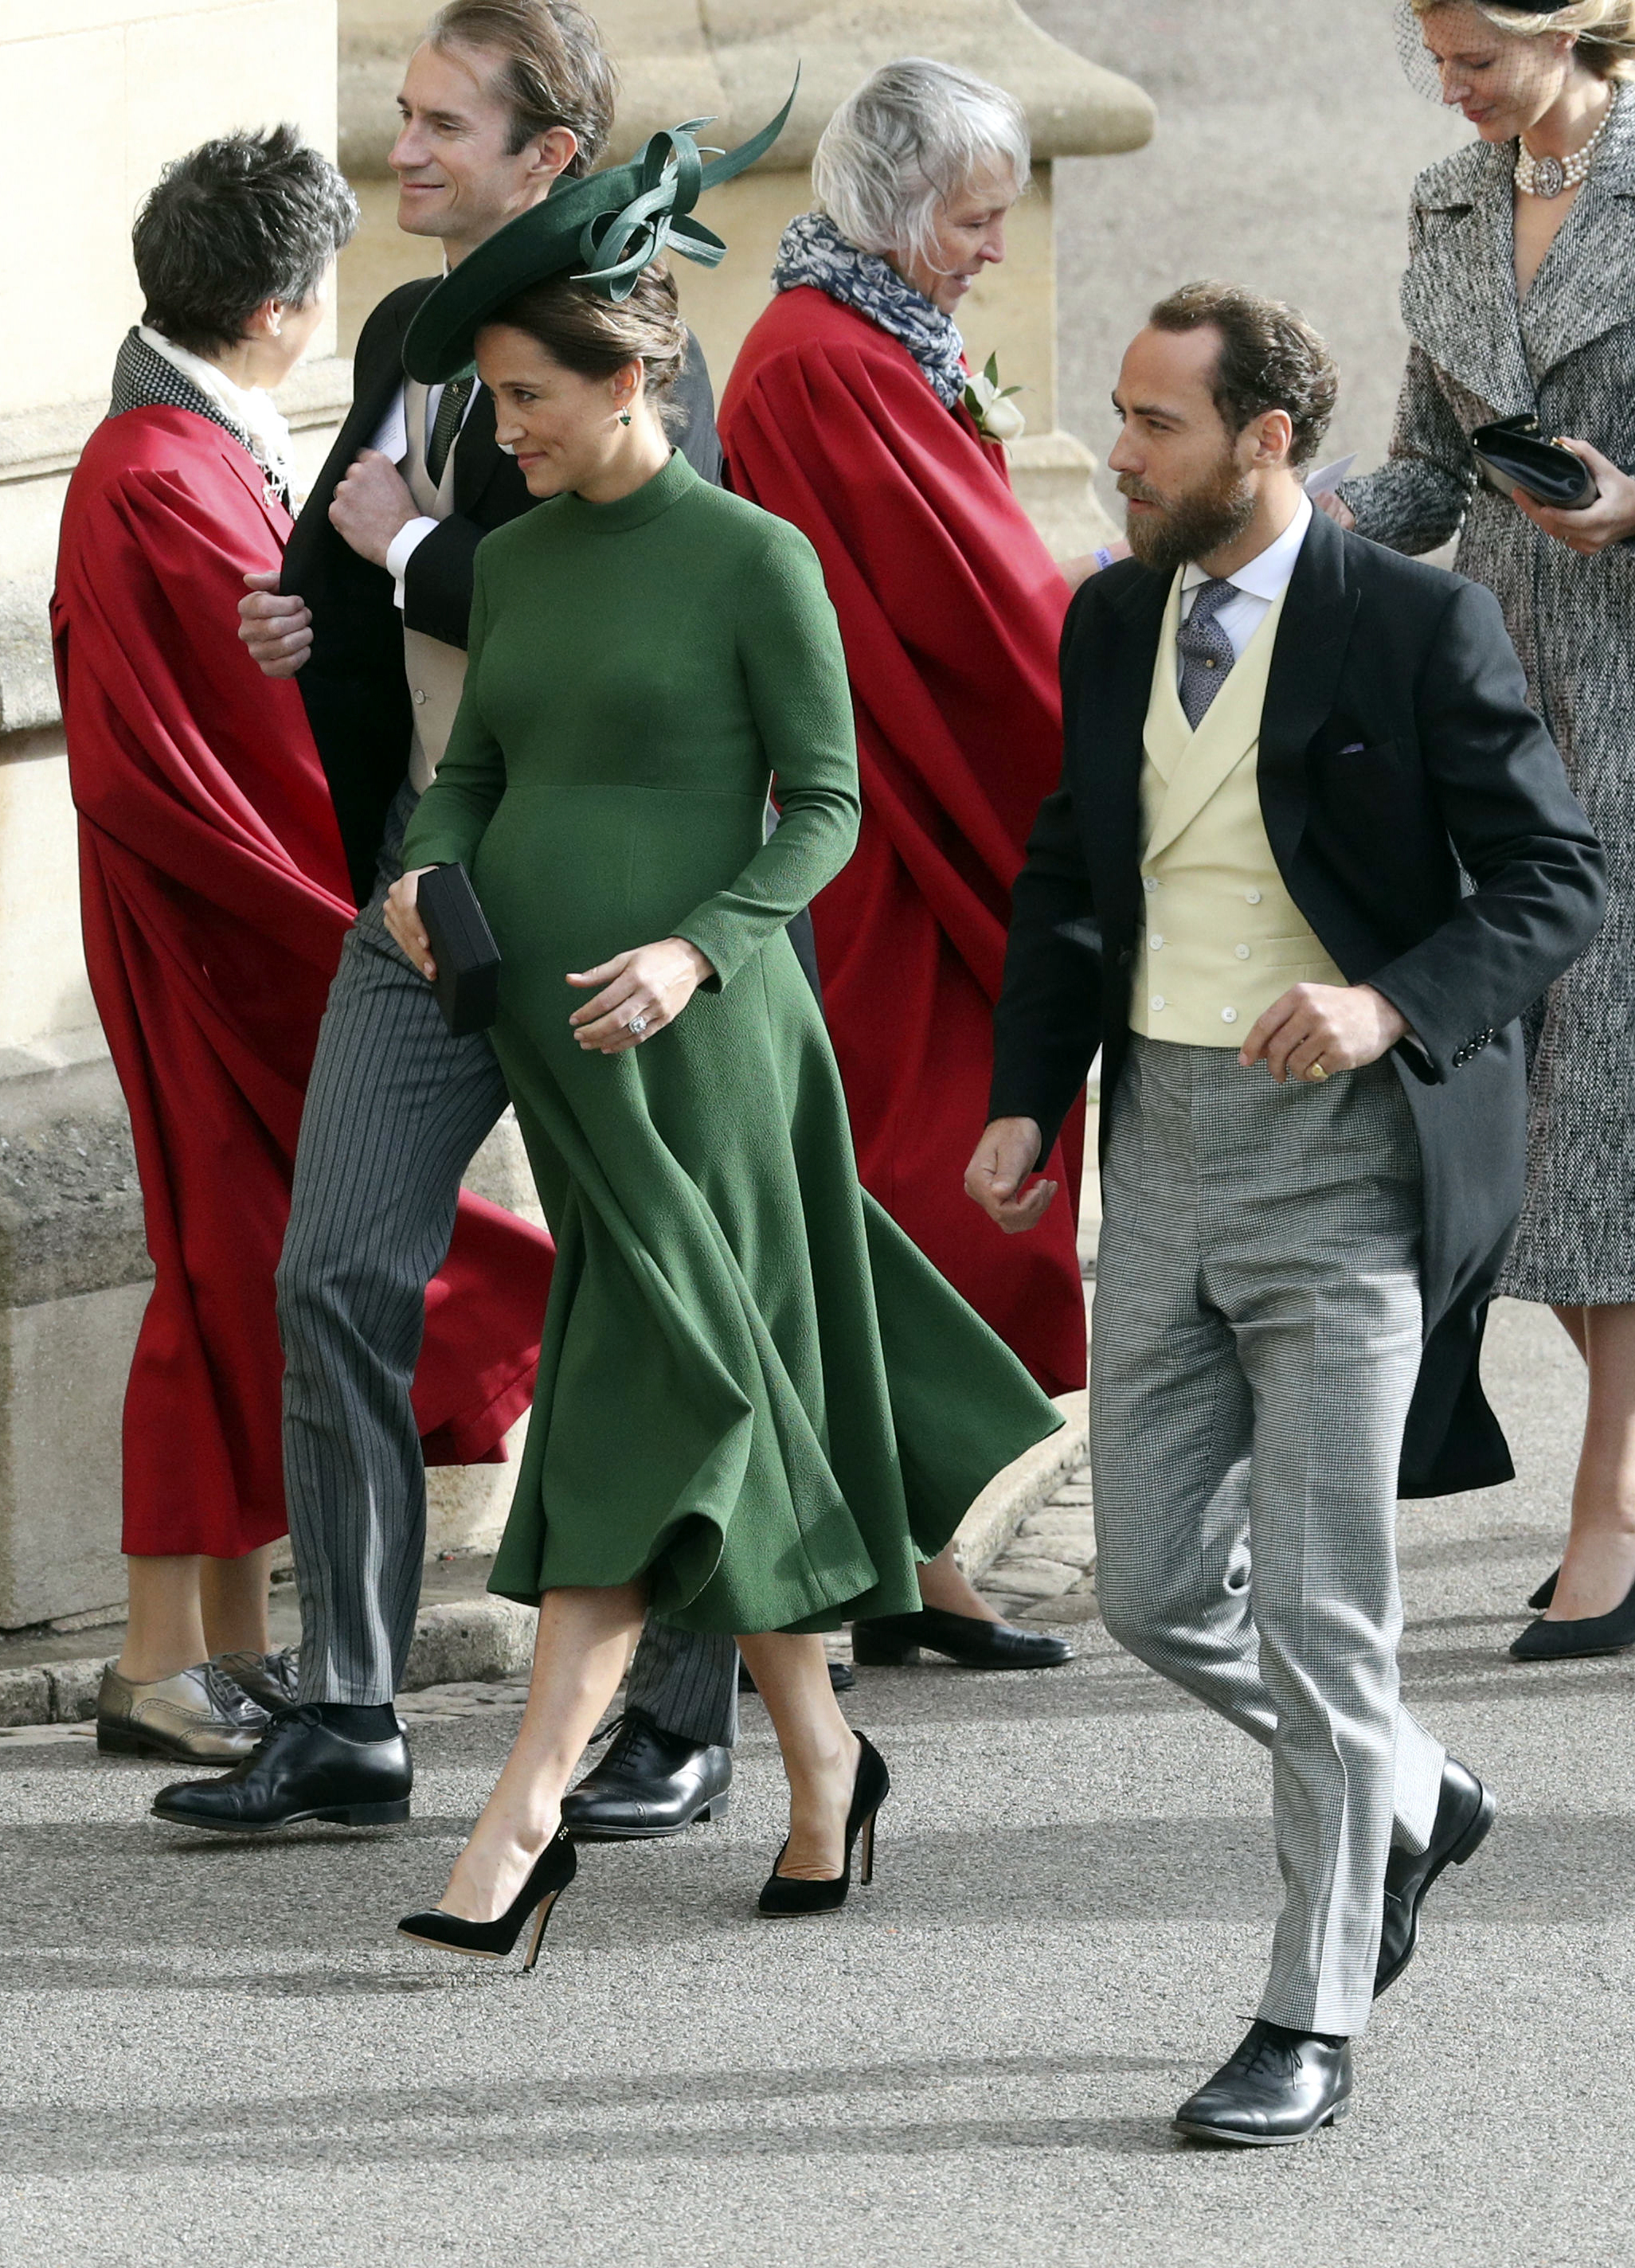 <div class='meta'><div class='origin-logo' data-origin='none'></div><span class='caption-text' data-credit='Andrew Matthews/Pool via AP'>Pippa and James Matthews, right, arrive for the wedding of Princess Eugenie of York and Jack Brooksbank at St George's Chapel, Windsor Castle, near London, England.</span></div>